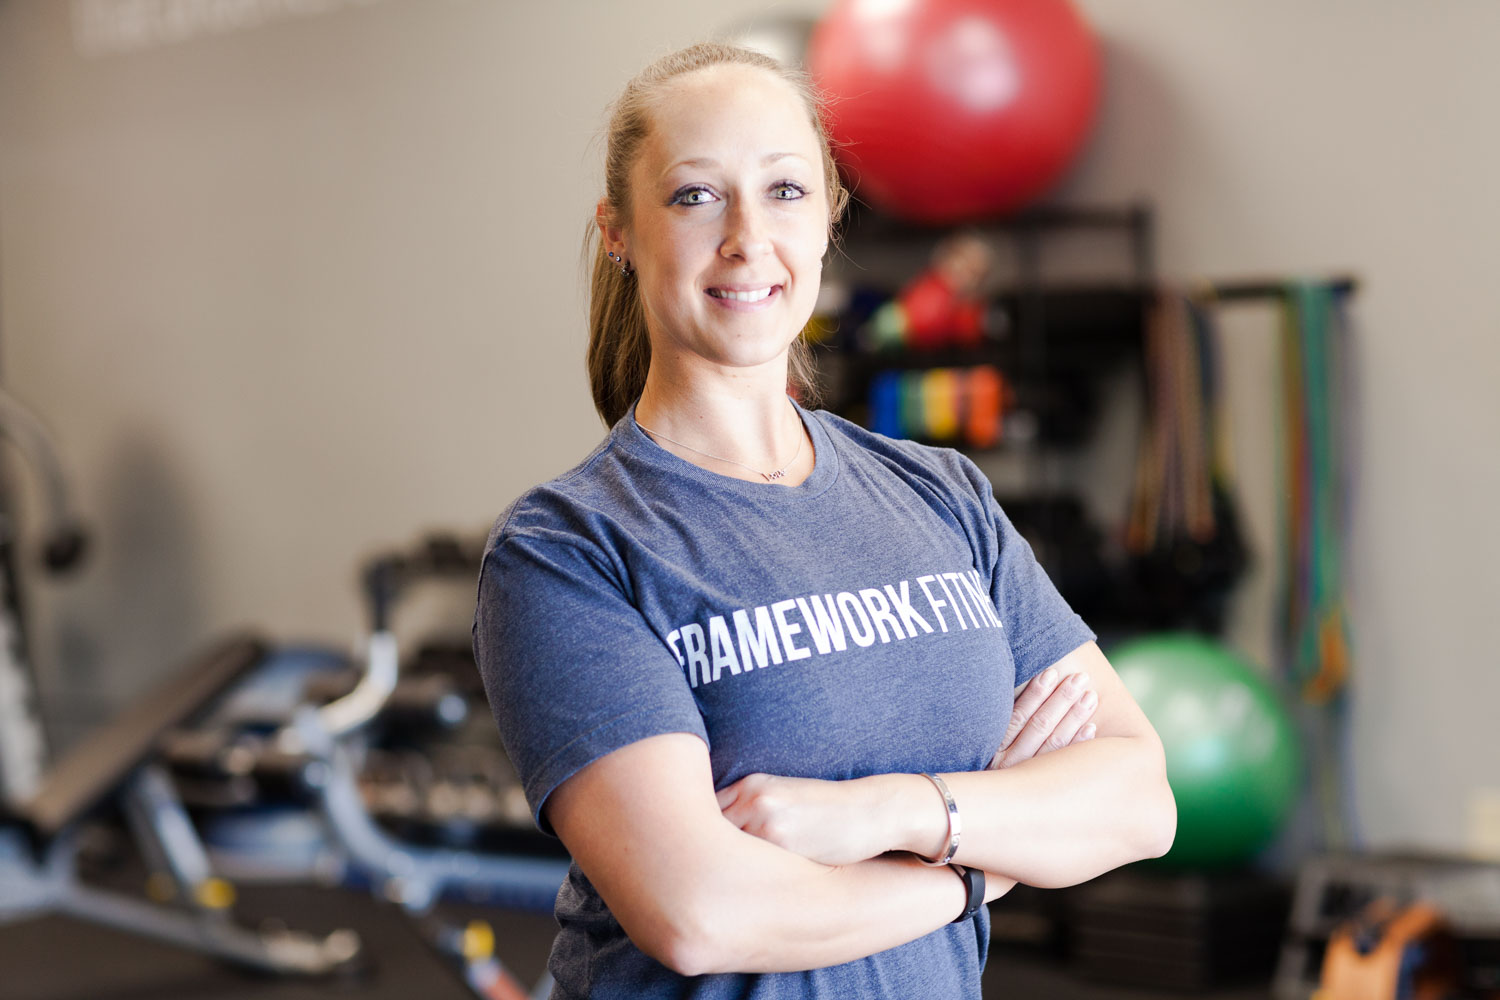 "Kimberly Pettitt     Personal Trainer, CPT NASM / Personal Training    With 10 years of experience, Kim has worked with a wide variety of populations across the fitness spectrum. Areas of focus include weight loss, strength and conditioning, injury prevention, nutrition counseling, and competition prep. ""I love to see my clients achieve their personal health and fitness goals, through a tailored approach of regular fitness activities and guided fitness programs."" Kim received a Bachelor of Science Degree in Exercise Science from The University of Toledo where she played Division 1 softball for 4 years. She has competed in 4 NPC Figure competitions.    Strengths:    Performance Enhancement Specialist, Fitness Nutrition Specialist   ""I believe the key to this success is by building a solid FRAMEWORK in the beginning."""